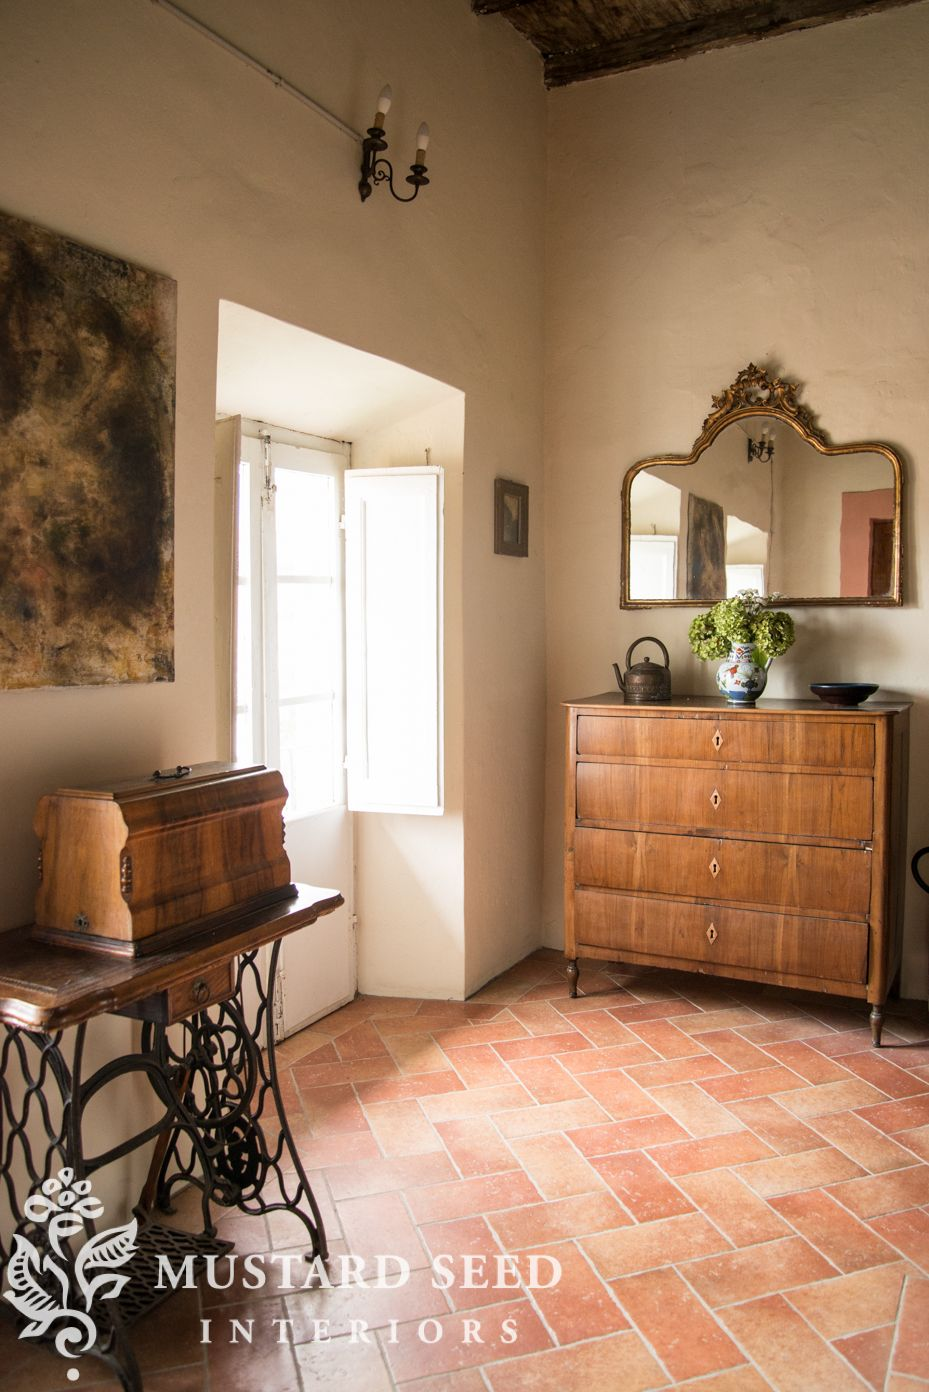 Casa cordati tuscan home tour miss mustard seed seeds red houses also furniture spiration house rh pinterest